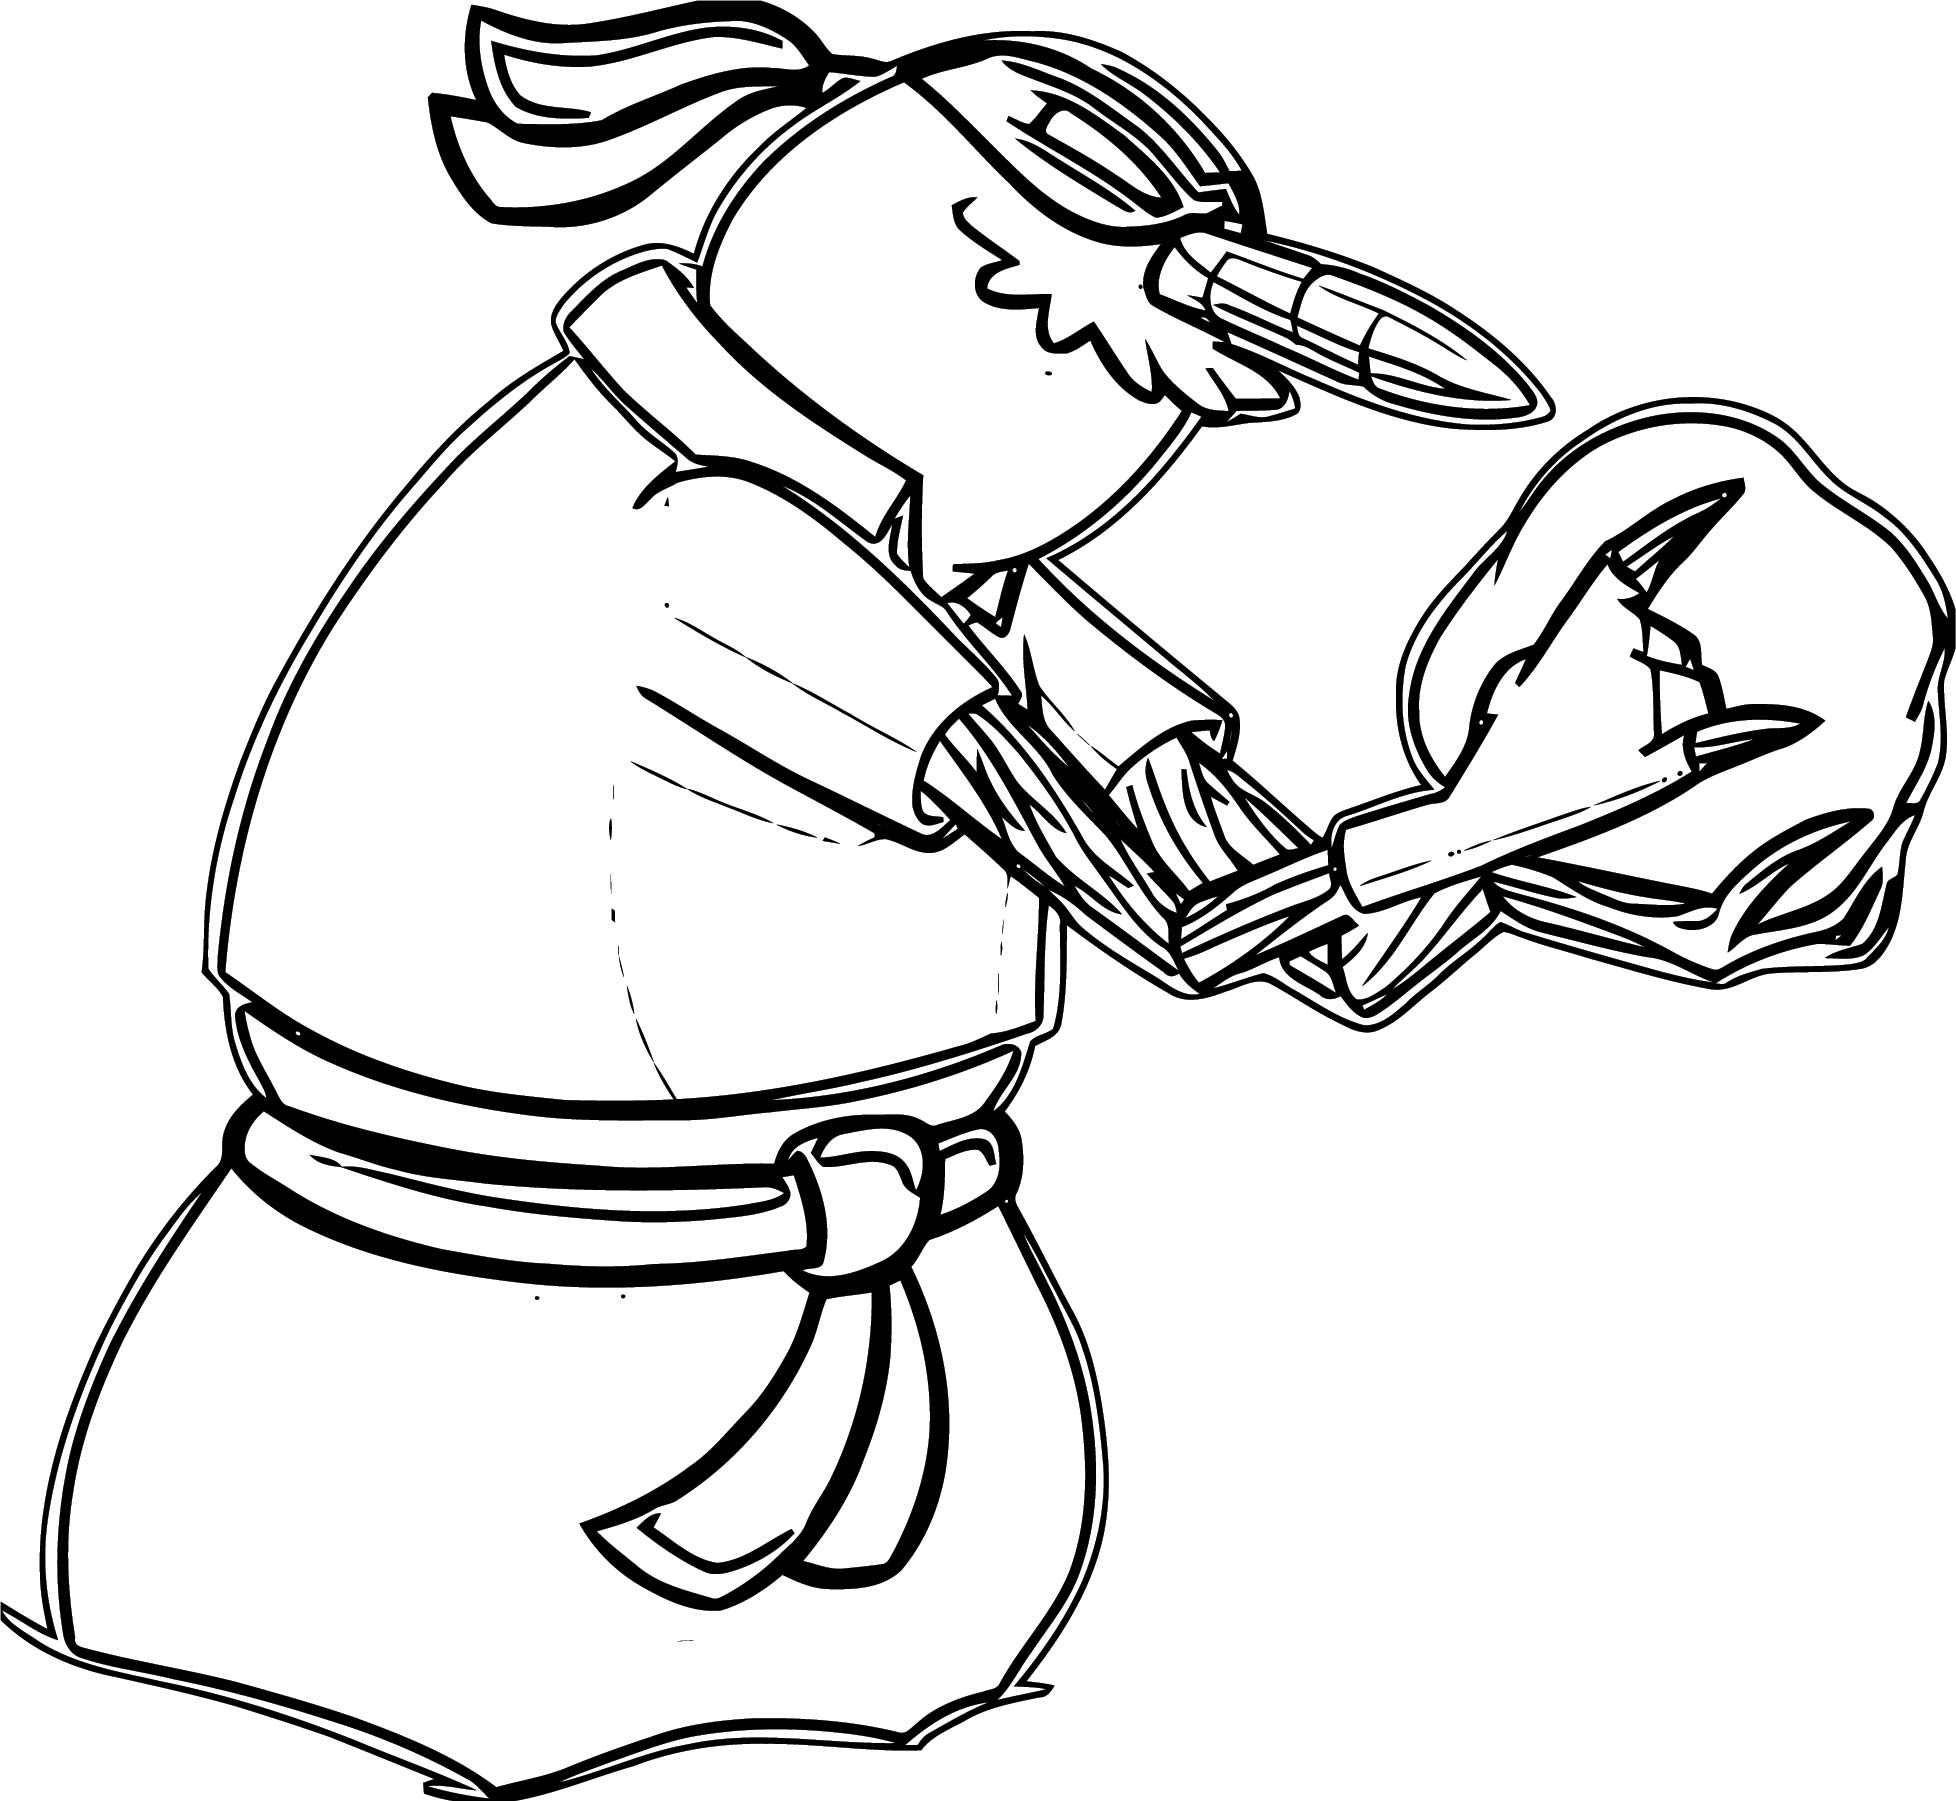 Club Penguin Villain 3 Coloring Page